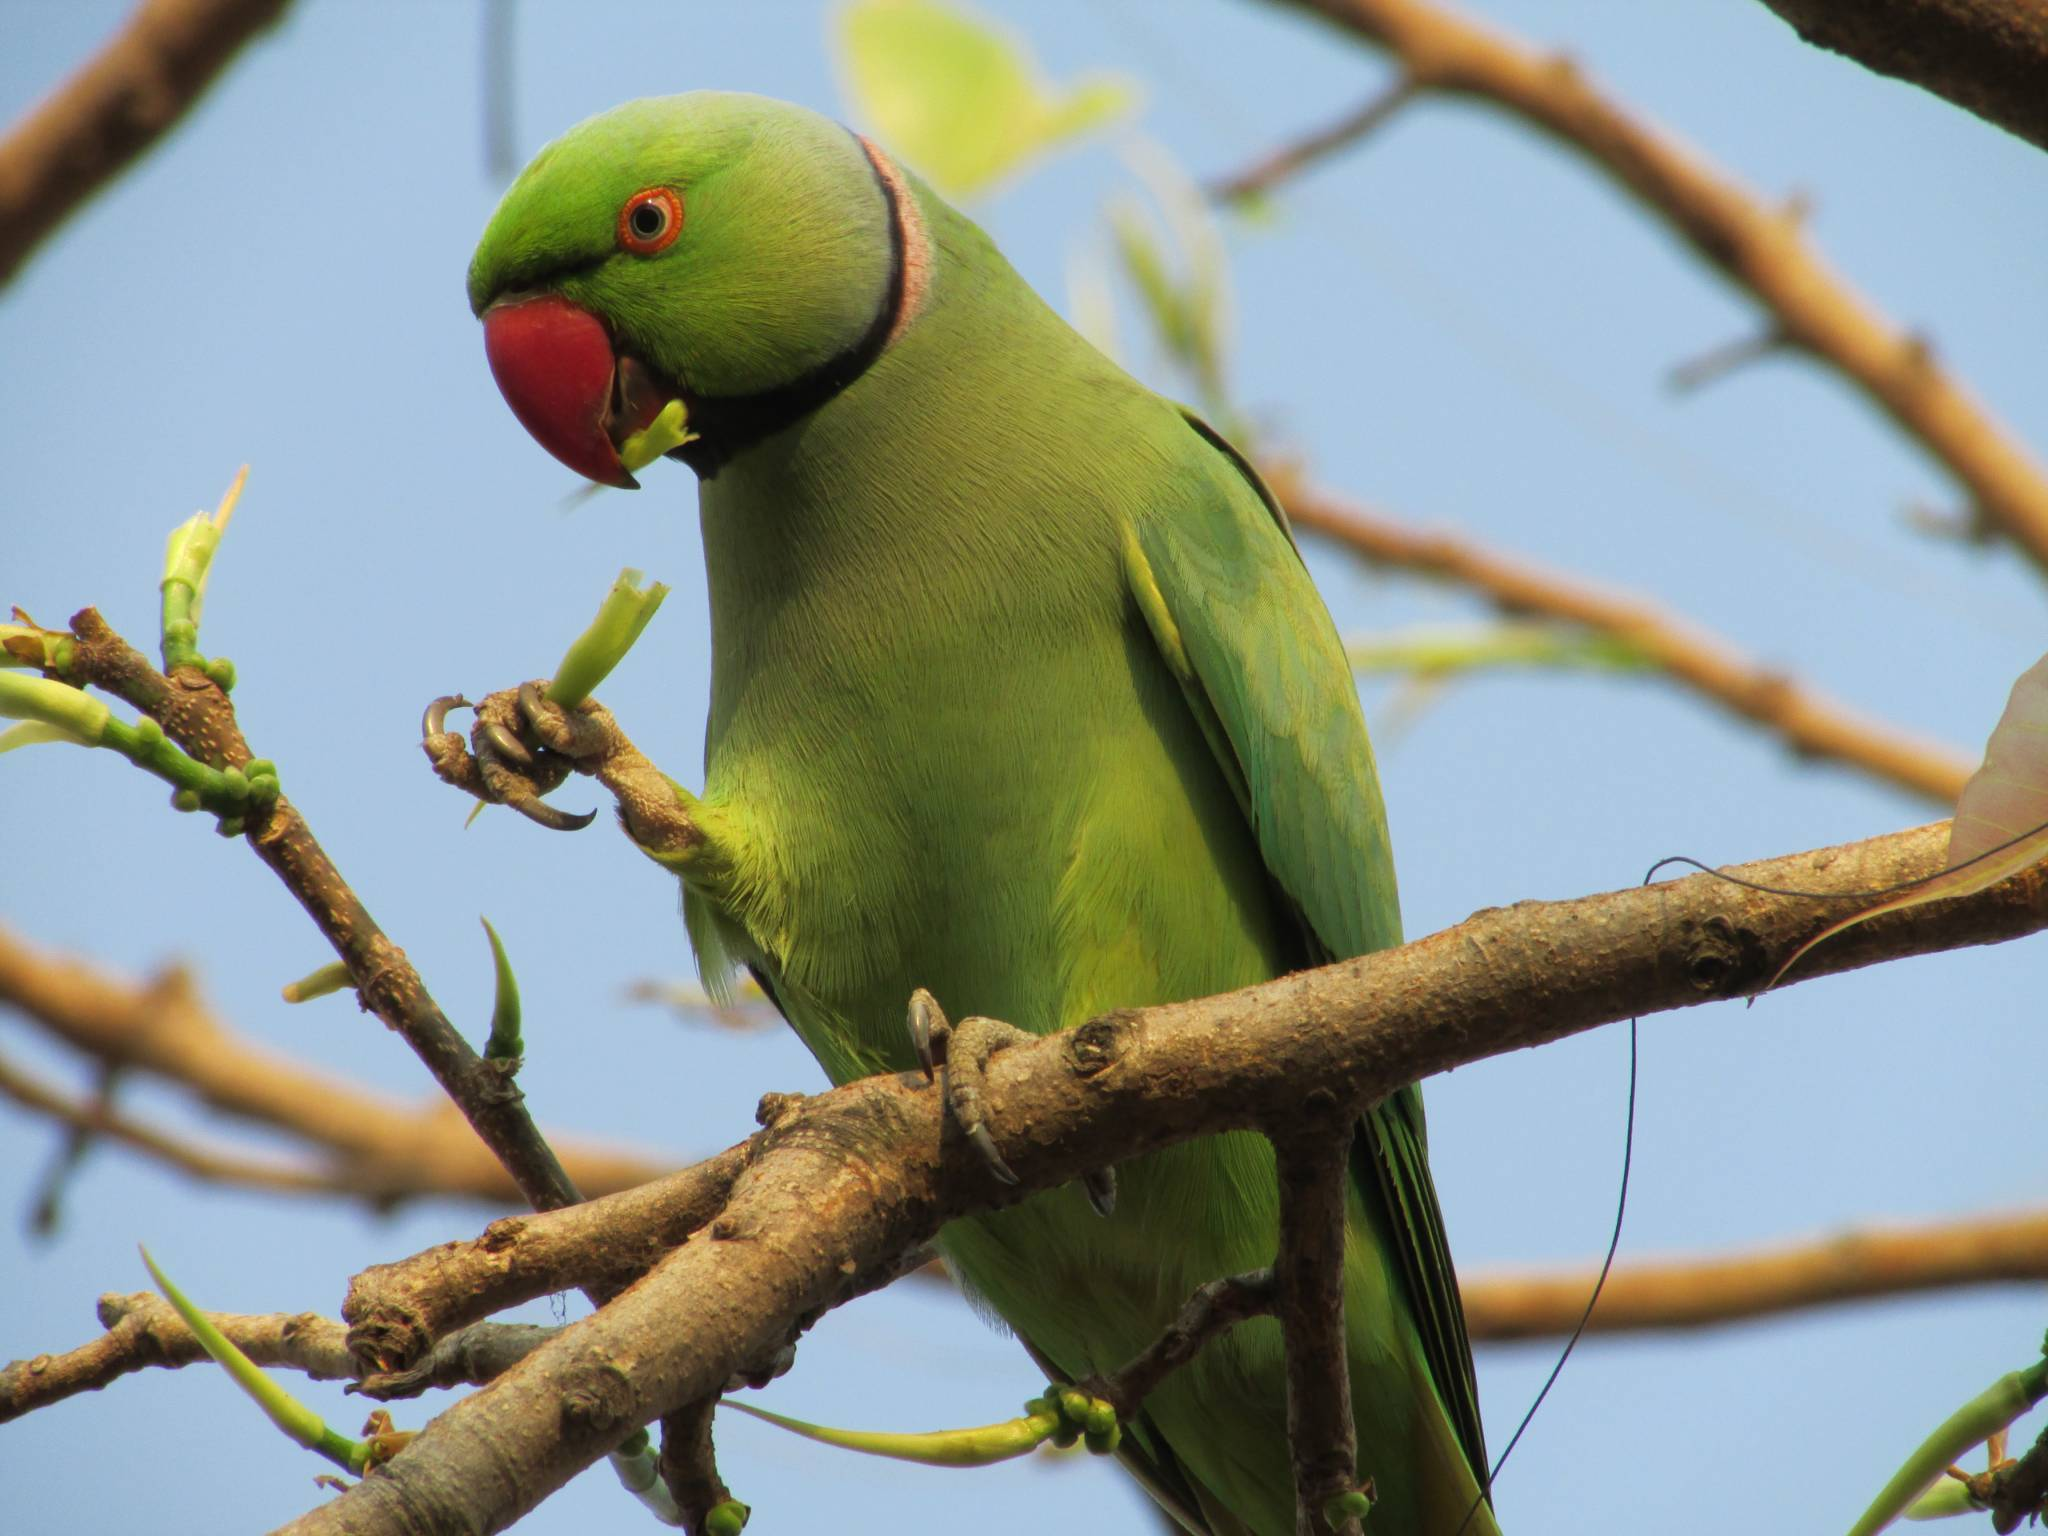 rose-ringed_parakeet_eating_leaves